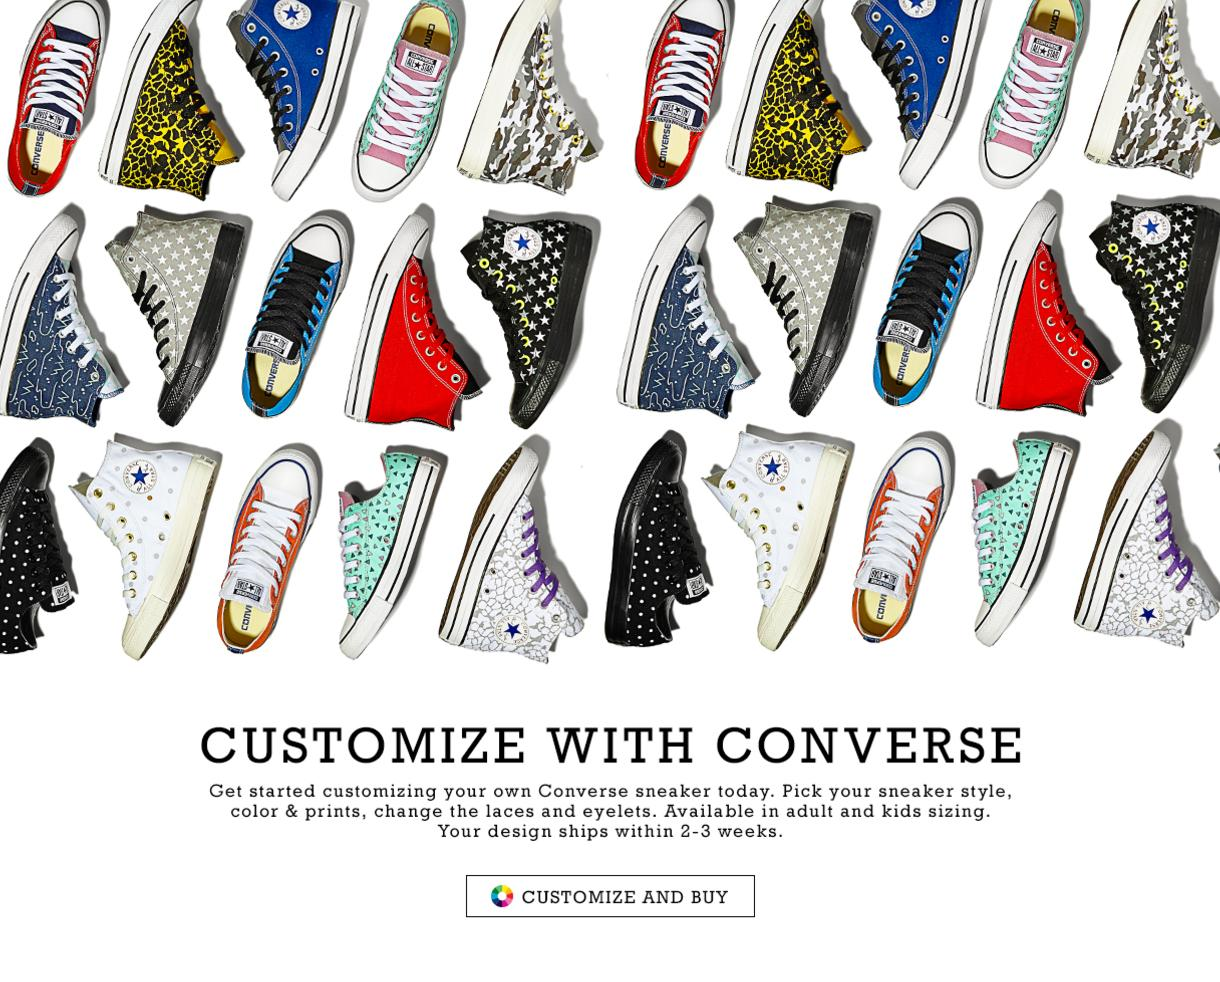 Design Your Own Converse Sneaker - Your Custom Design Ships within 2-3 Weeks!